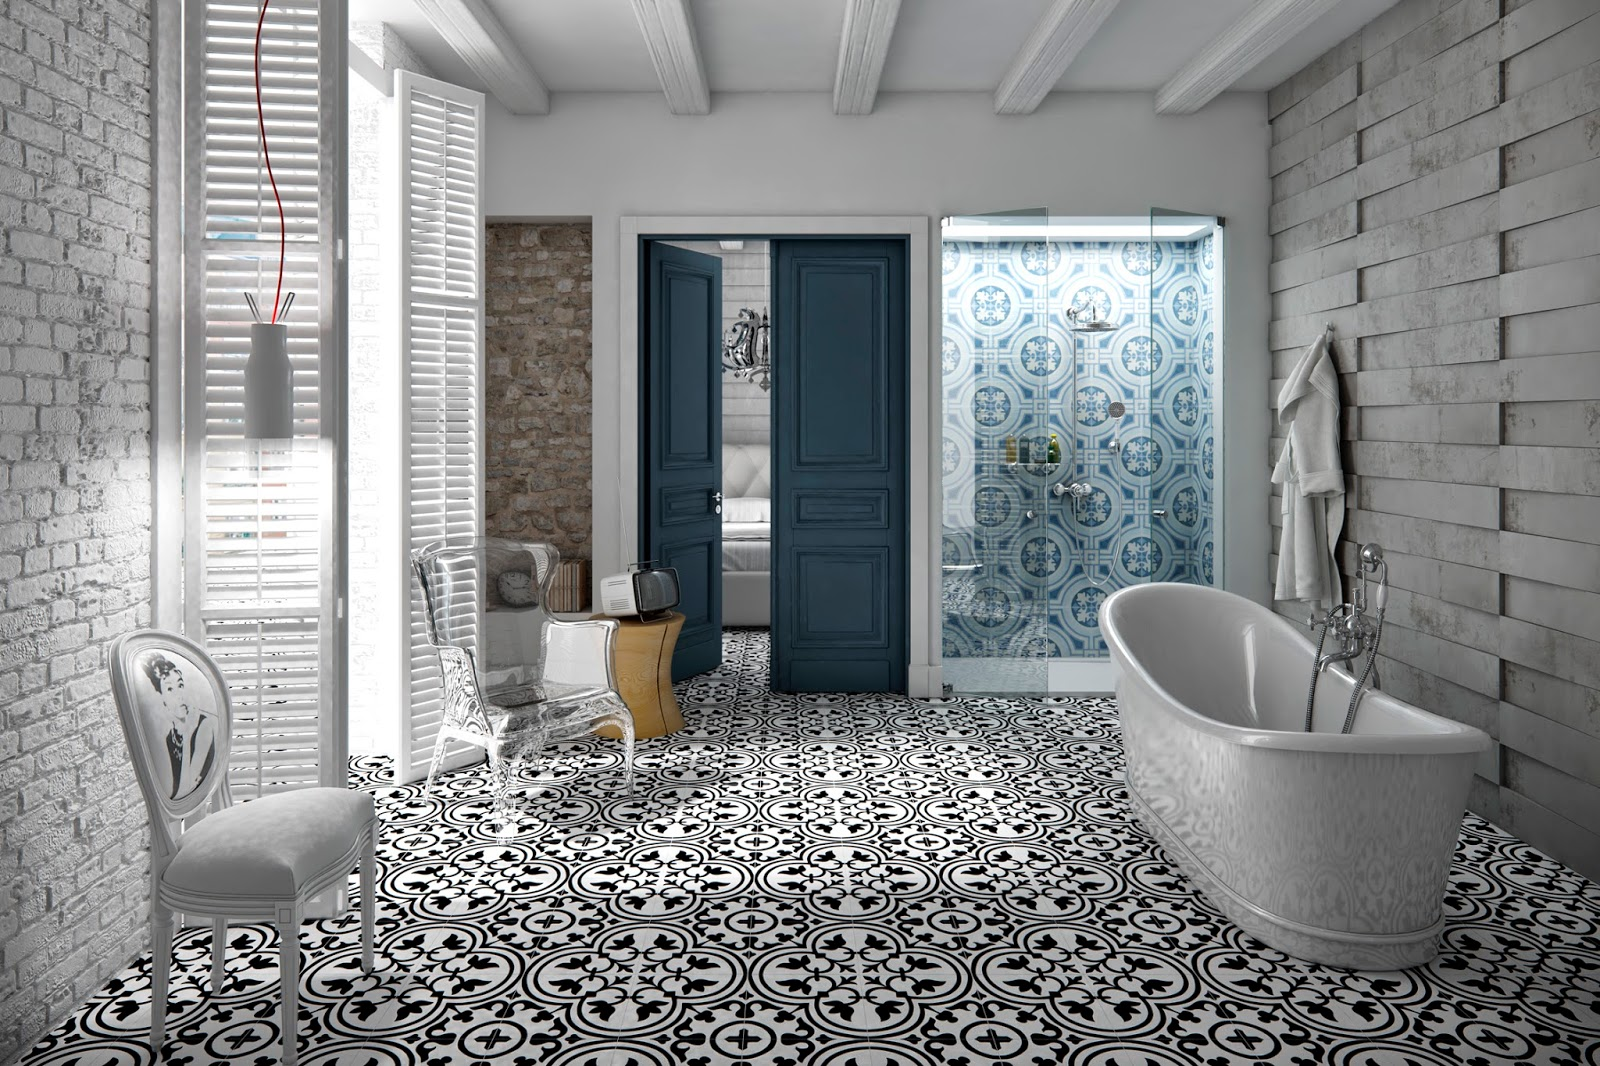 Apavisa uses classic patterns and a straight-forward palette